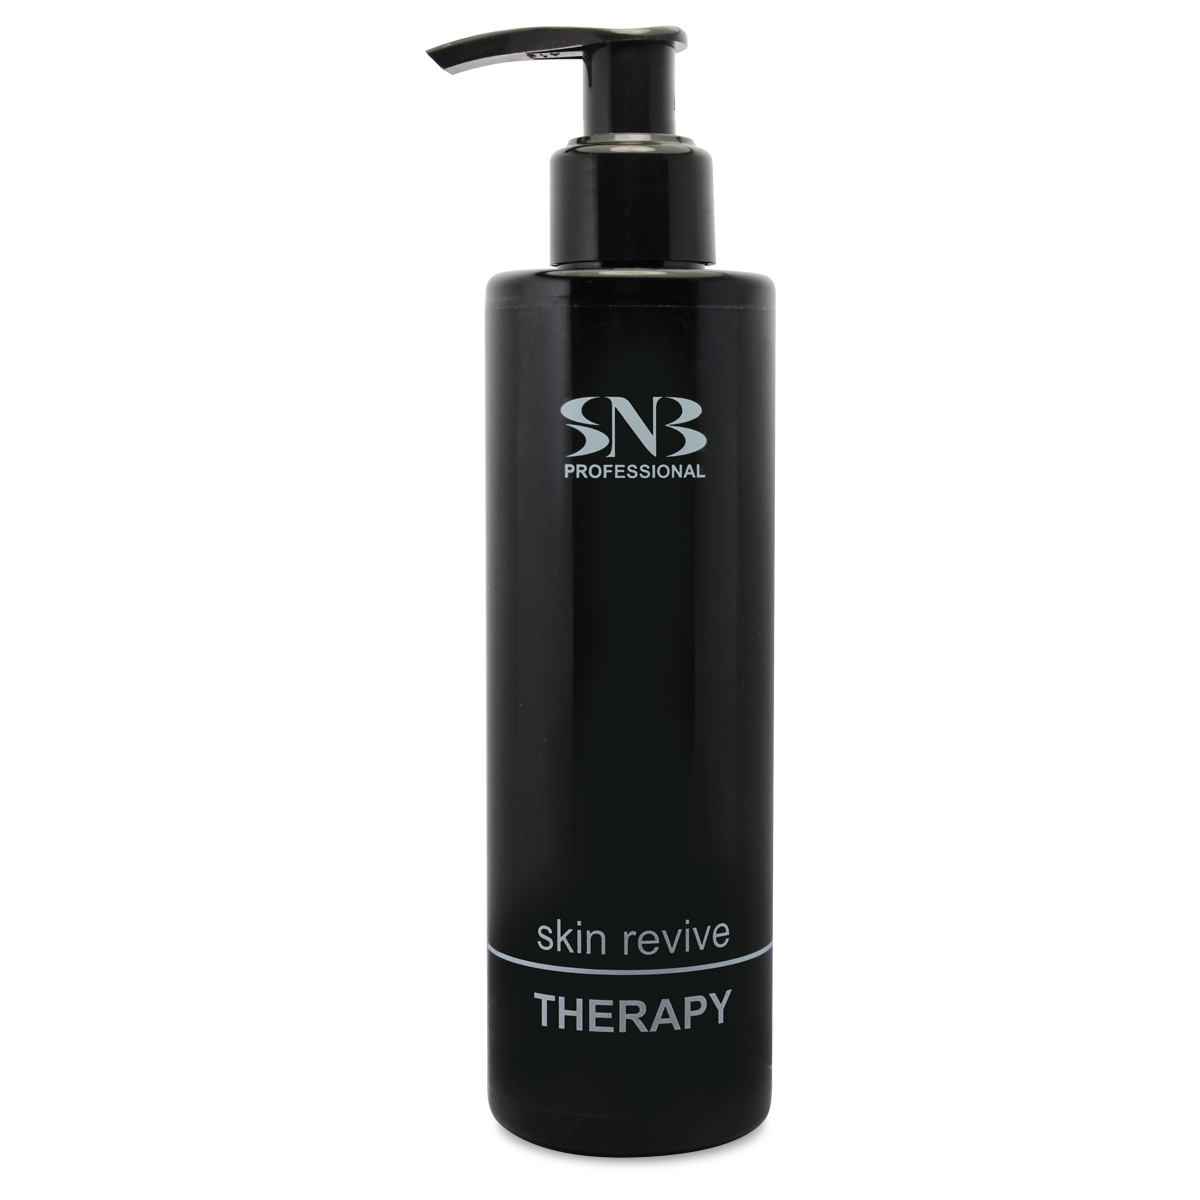 Skin revive therapy SNB